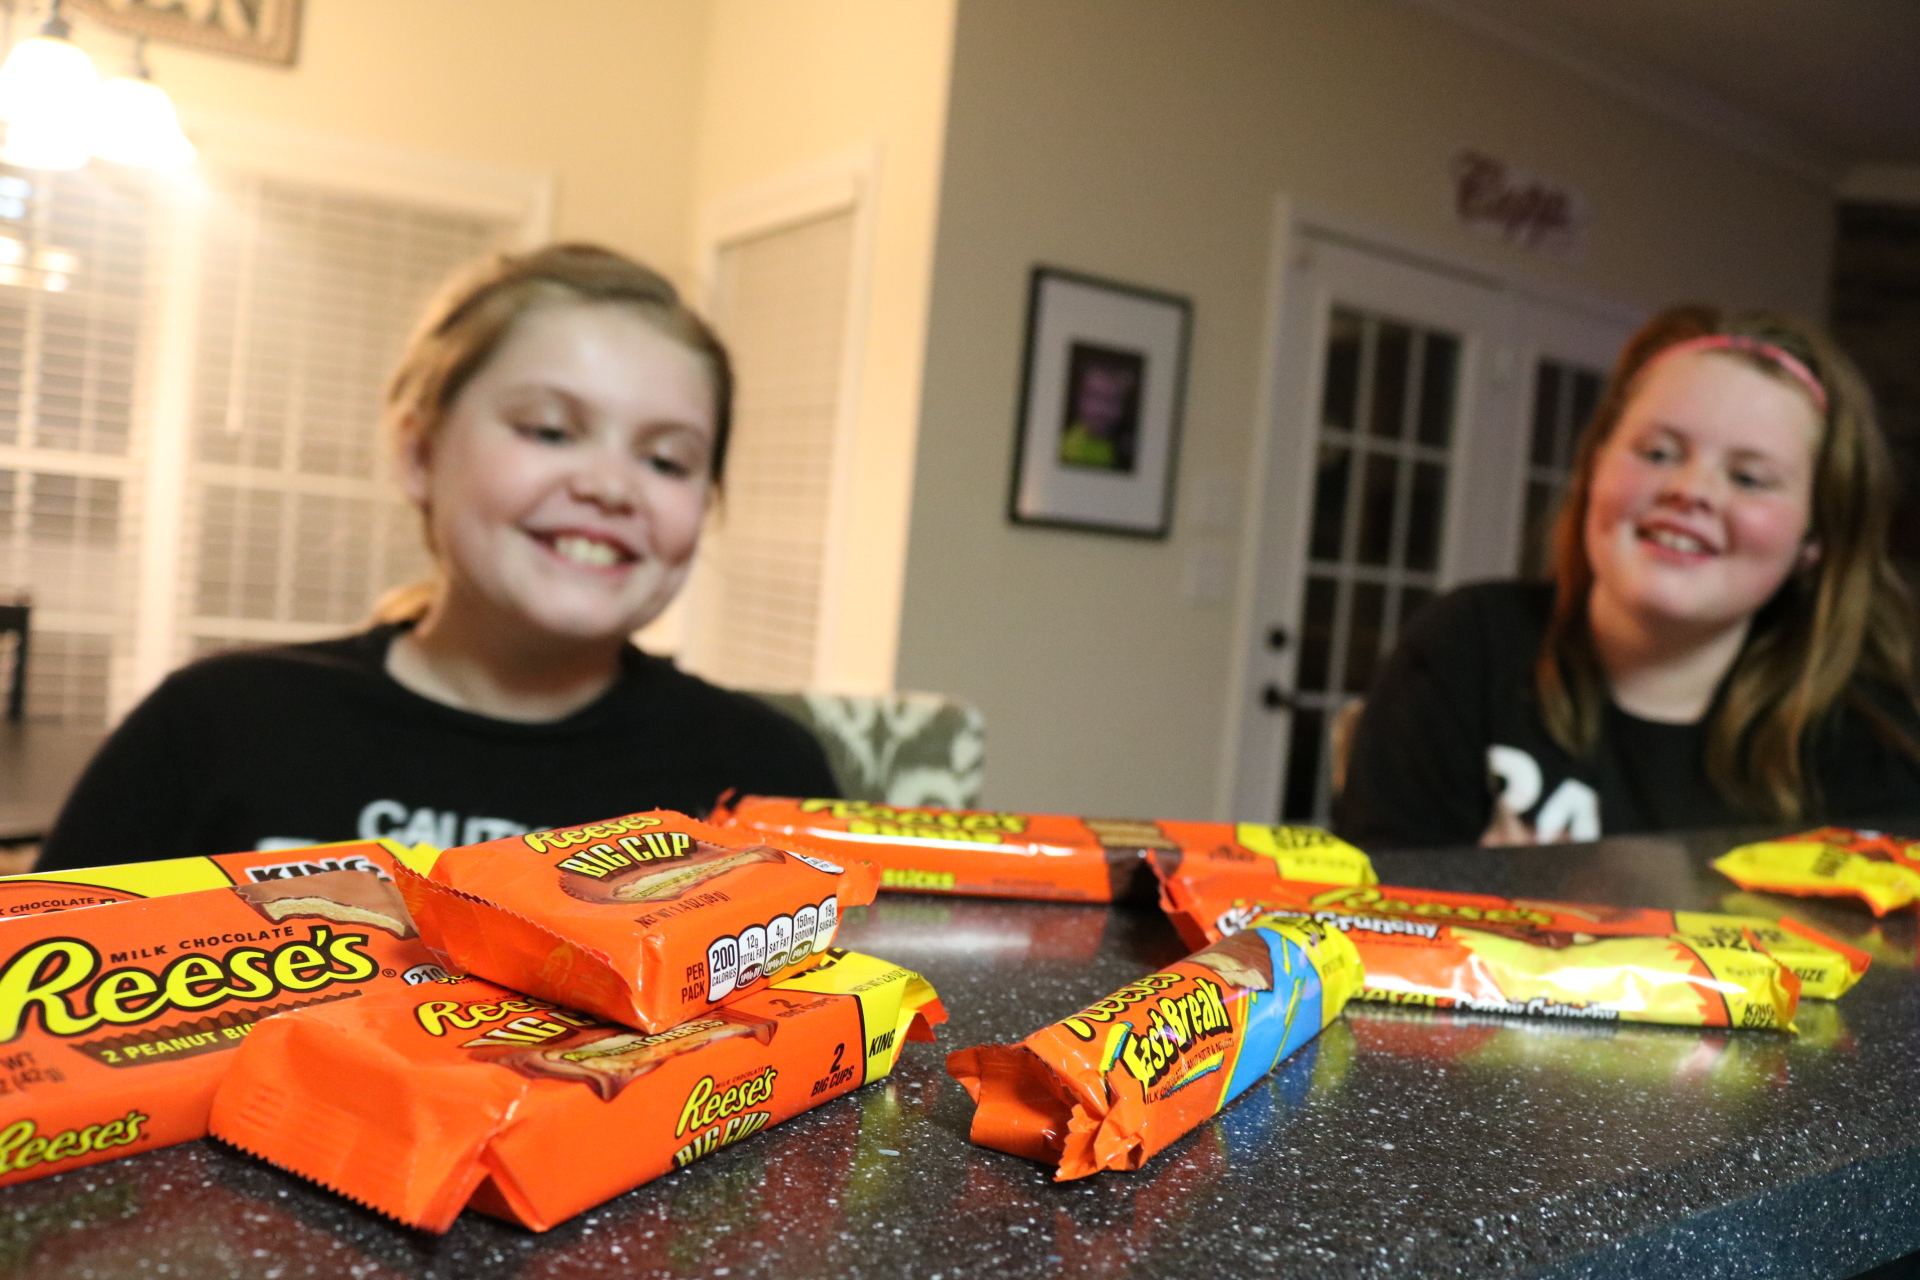 We brought these two every Reese's ever made!